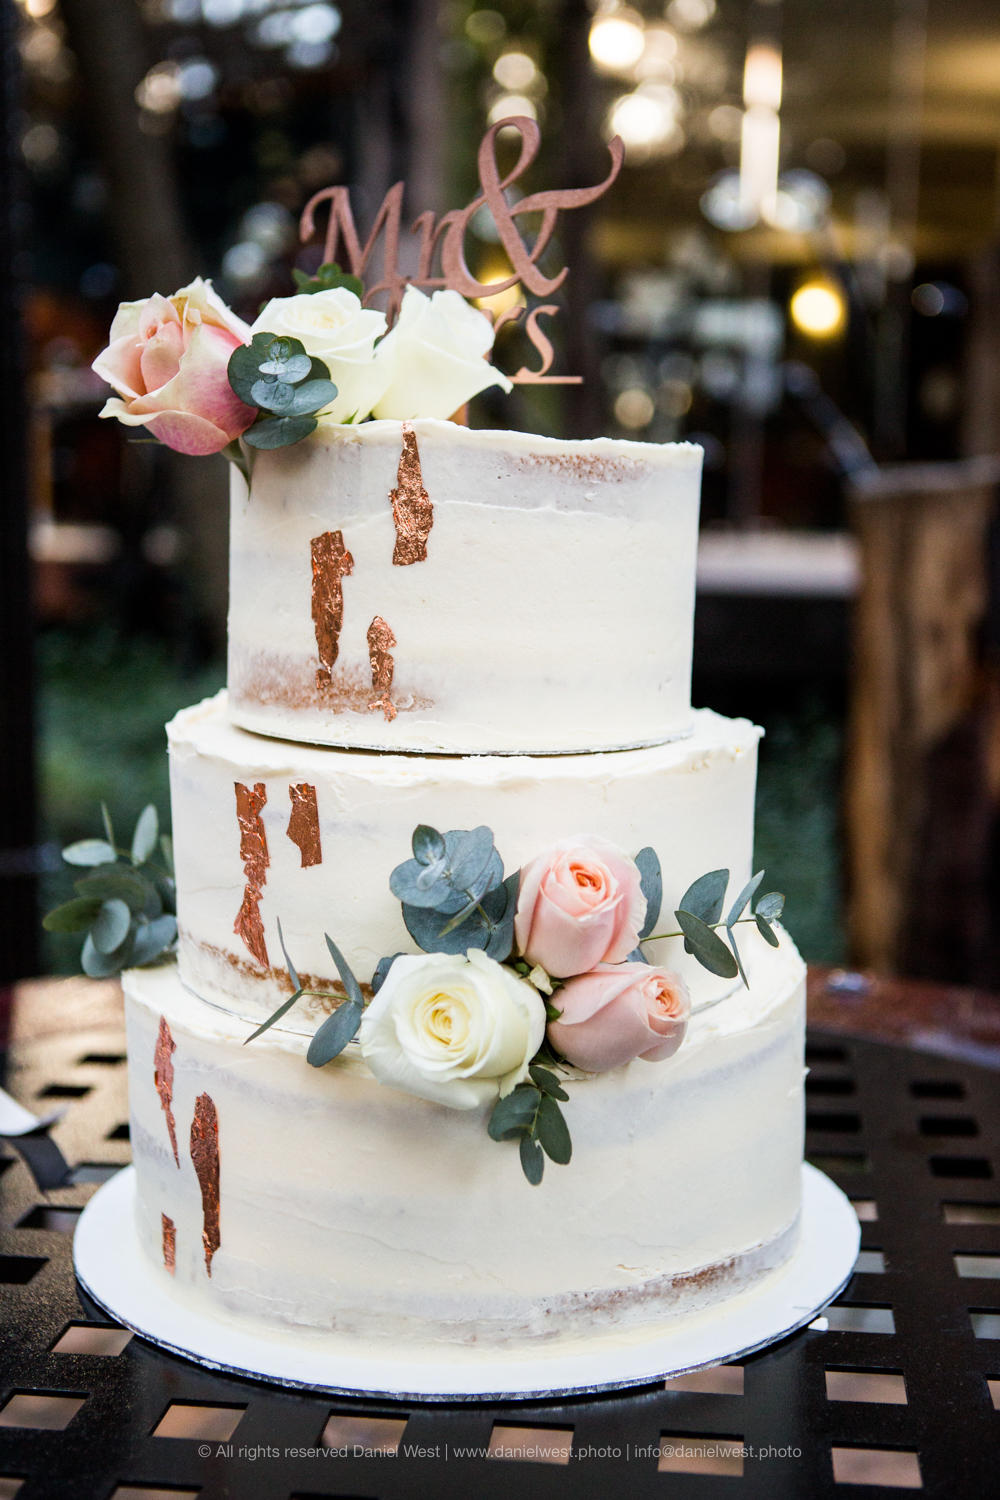 South African Wedding Cakes - Wedding Cake Flavors